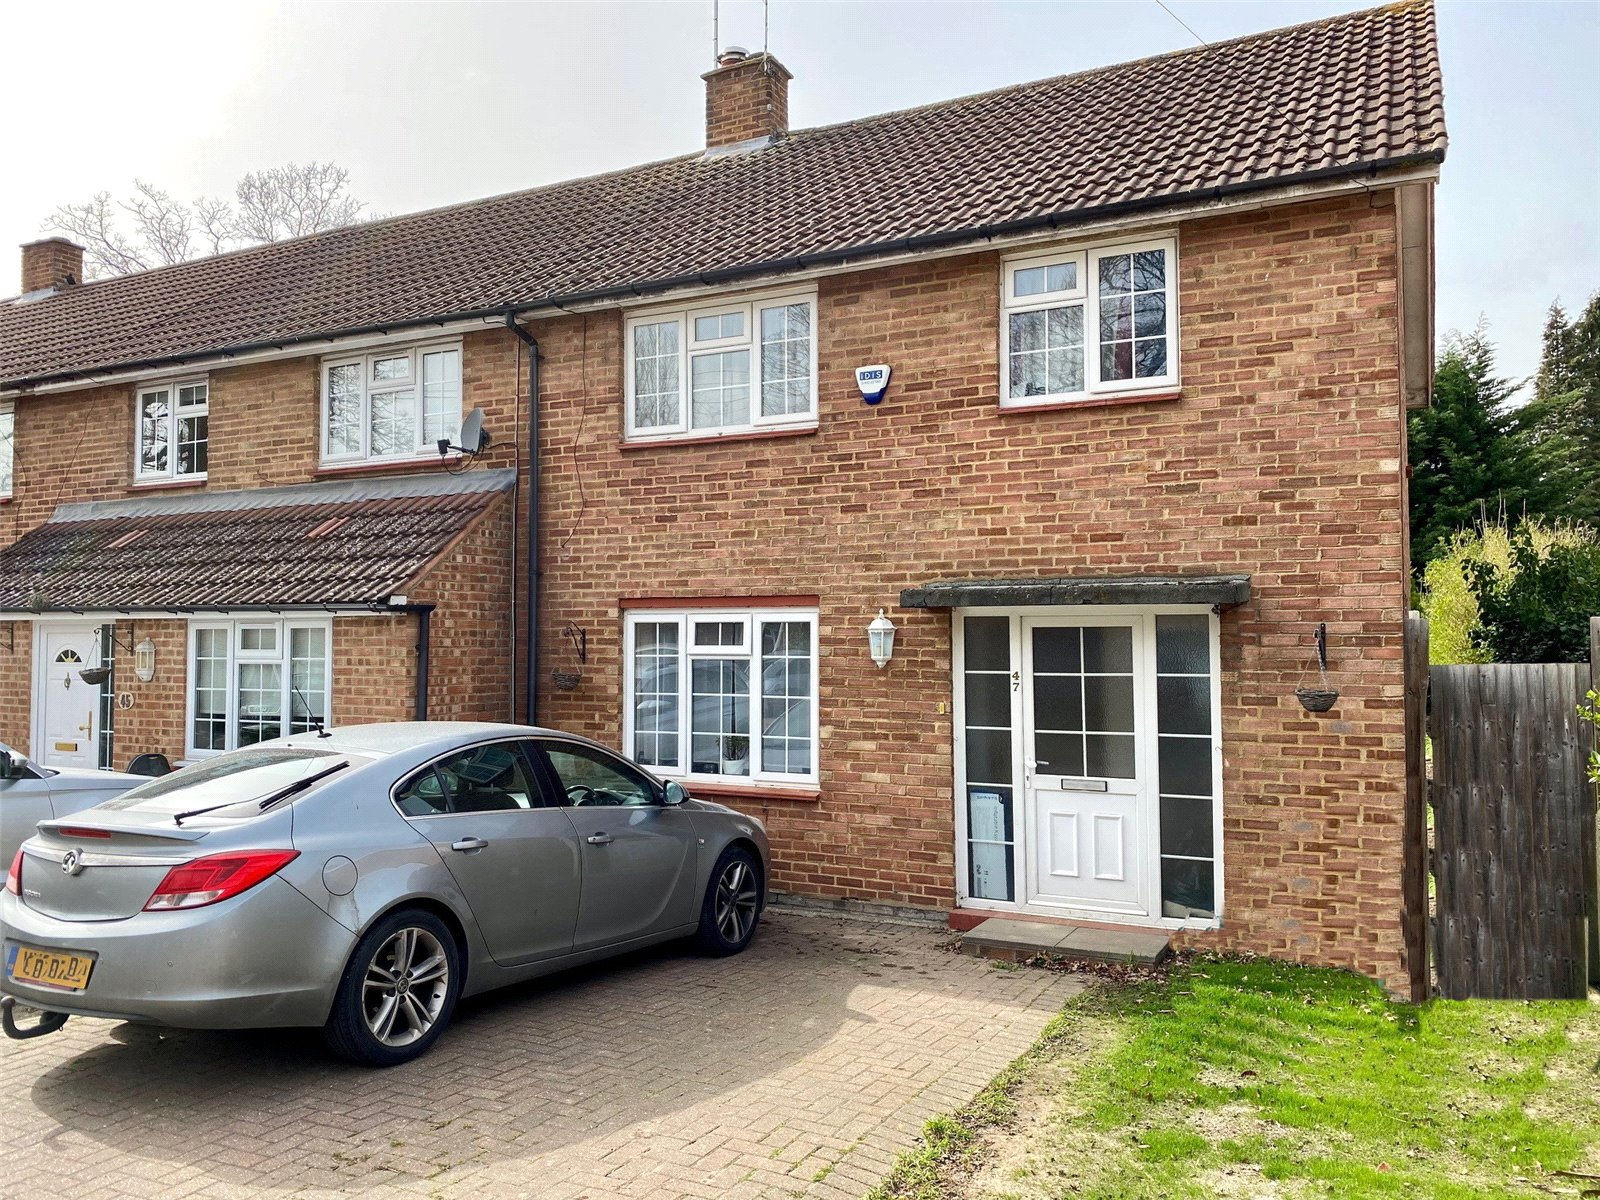 3 bed house to rent in Bricket Wood, AL2 3NB  - Property Image 1